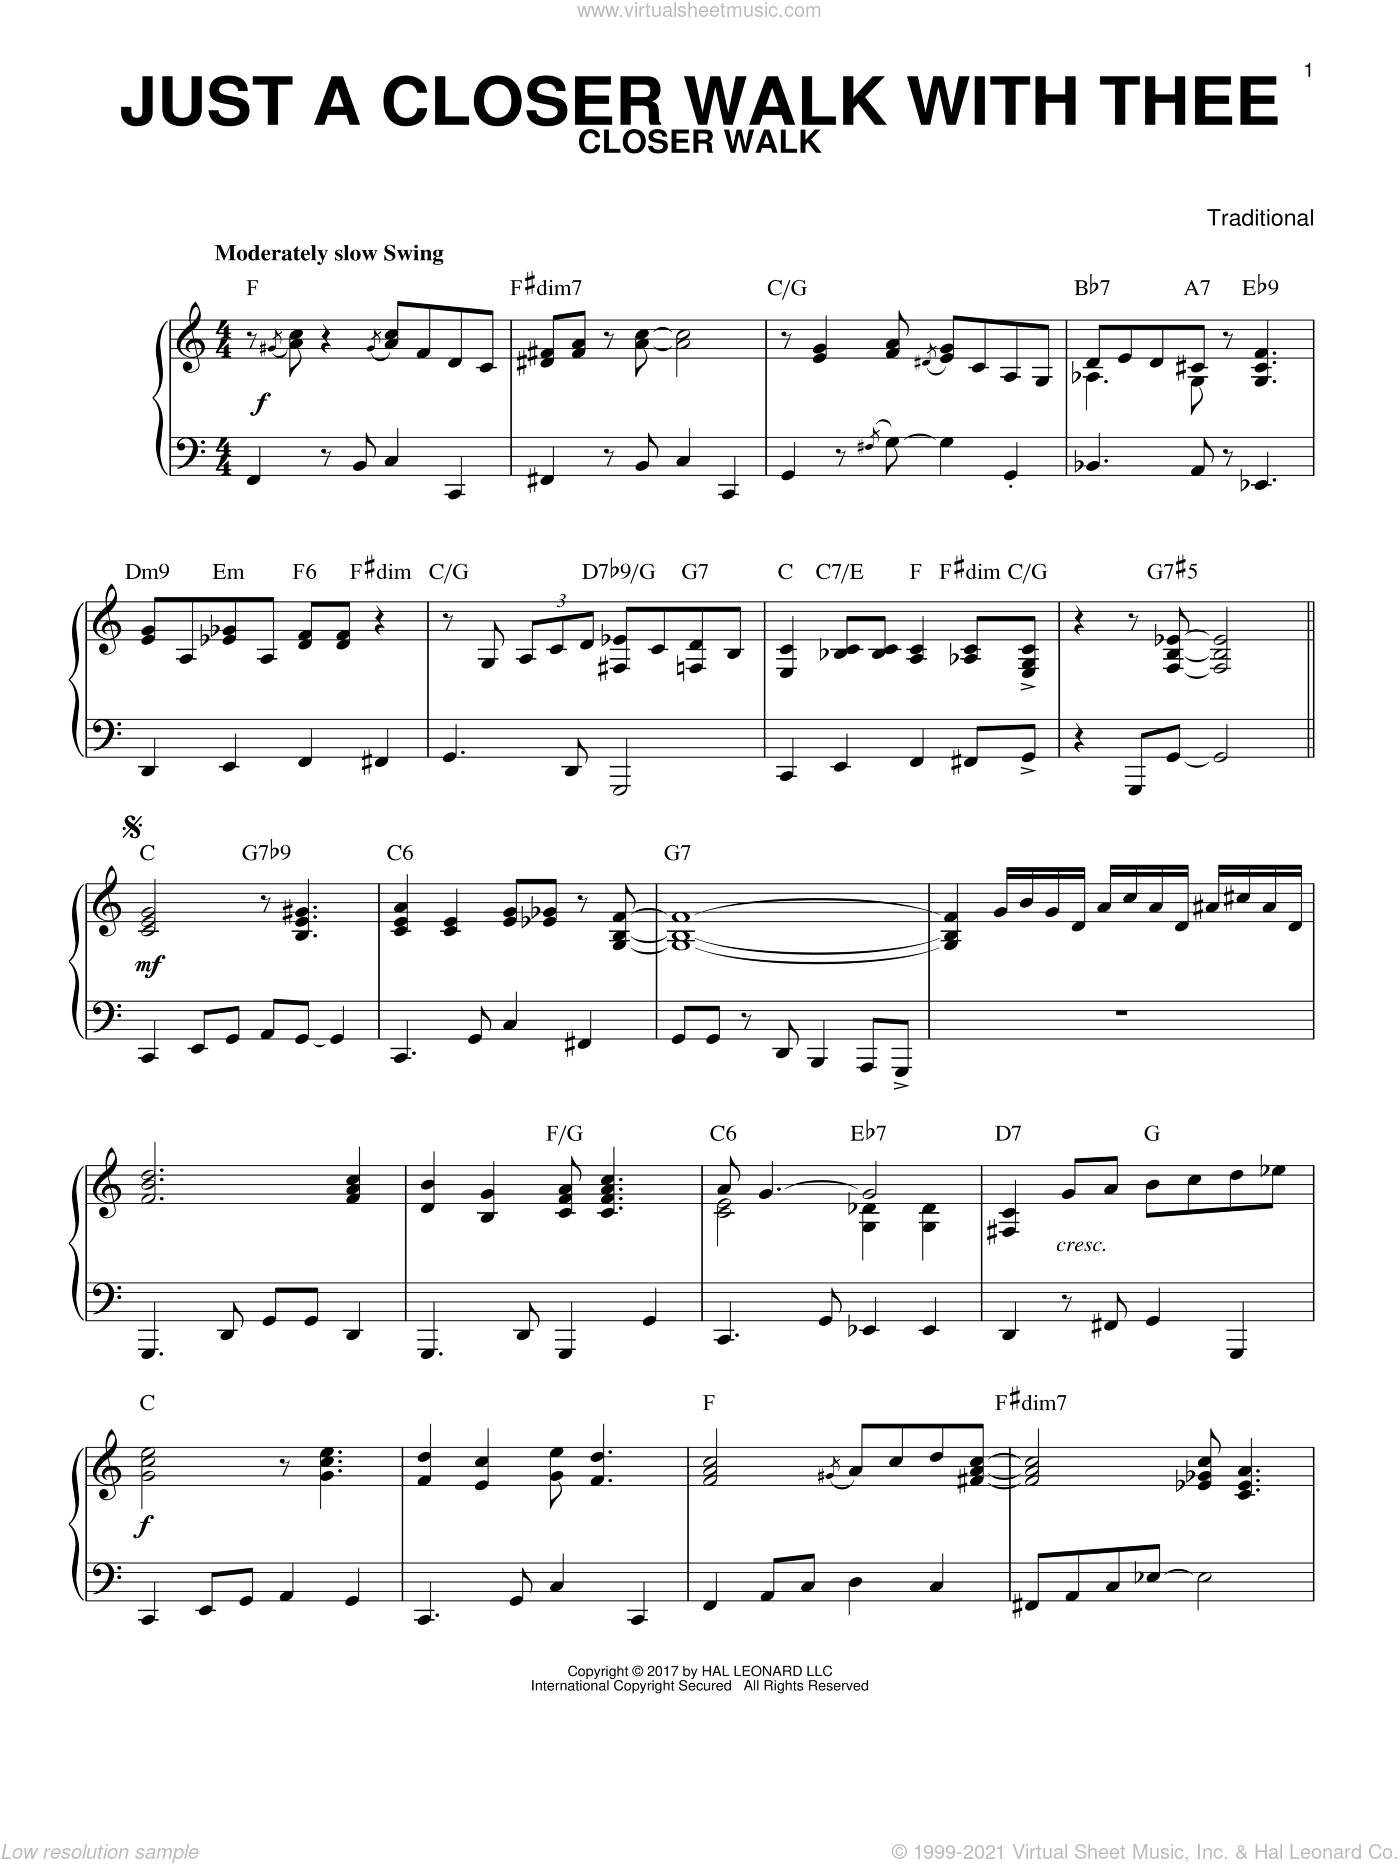 Just A Closer Walk With Thee, (intermediate) sheet music for piano solo by Kenneth Morris and Miscellaneous, intermediate skill level